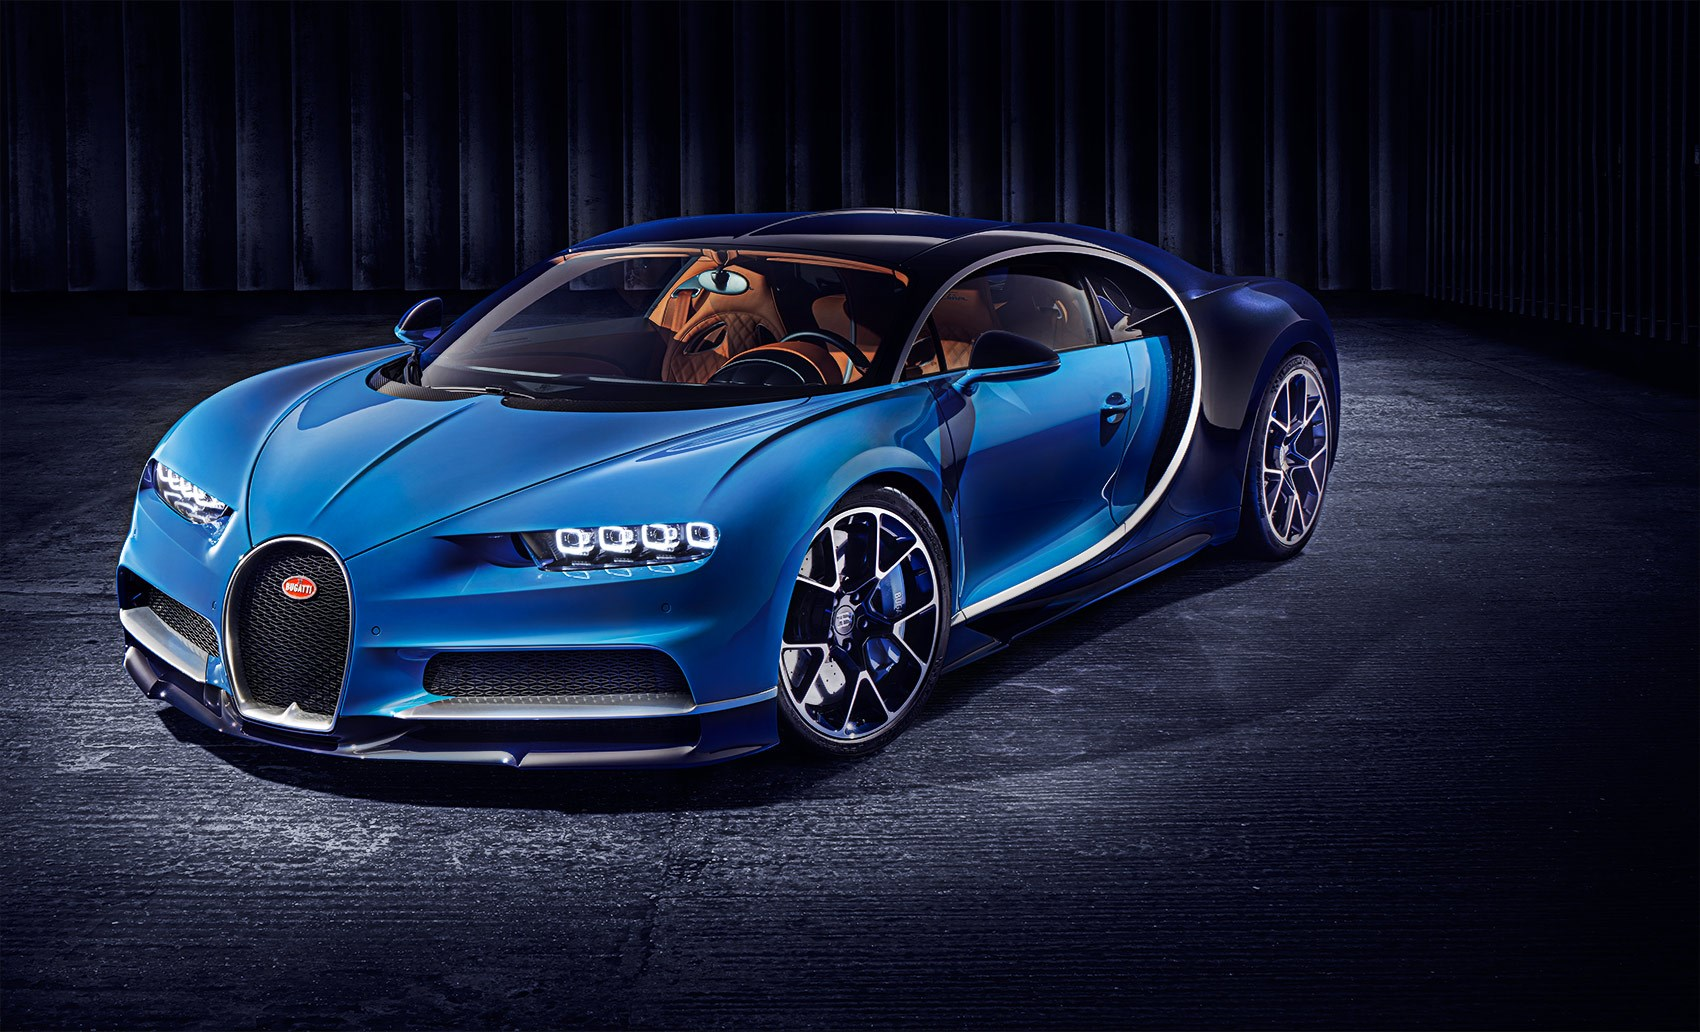 Bugatti Chiron Gets Super Powerful With 1 500 Horsepower Brumpost